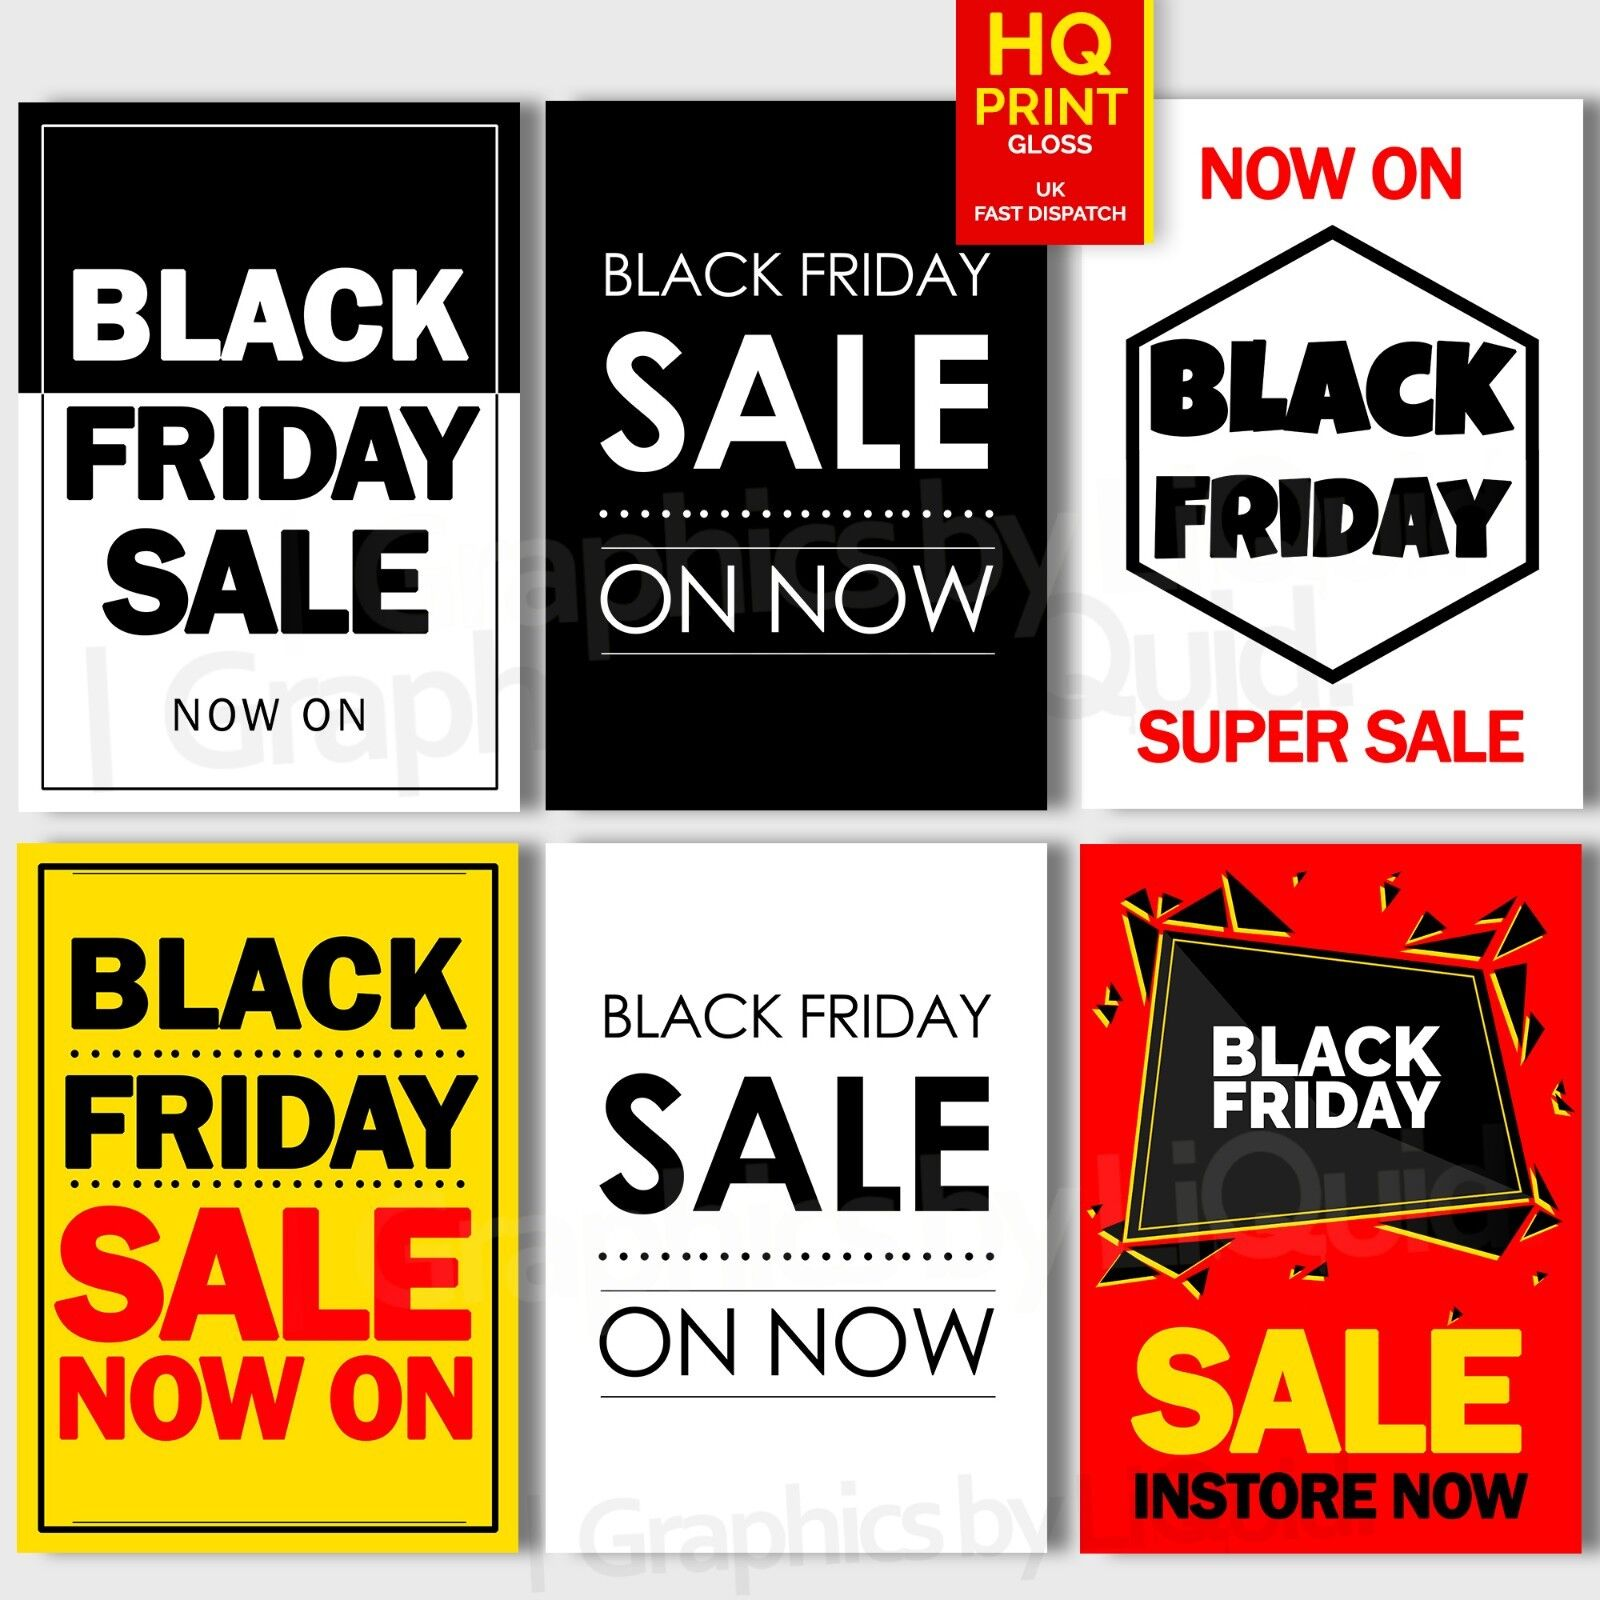 Sale Black Friday Details About Black Friday Sale Poster Sale Now On Printed Sign Poster